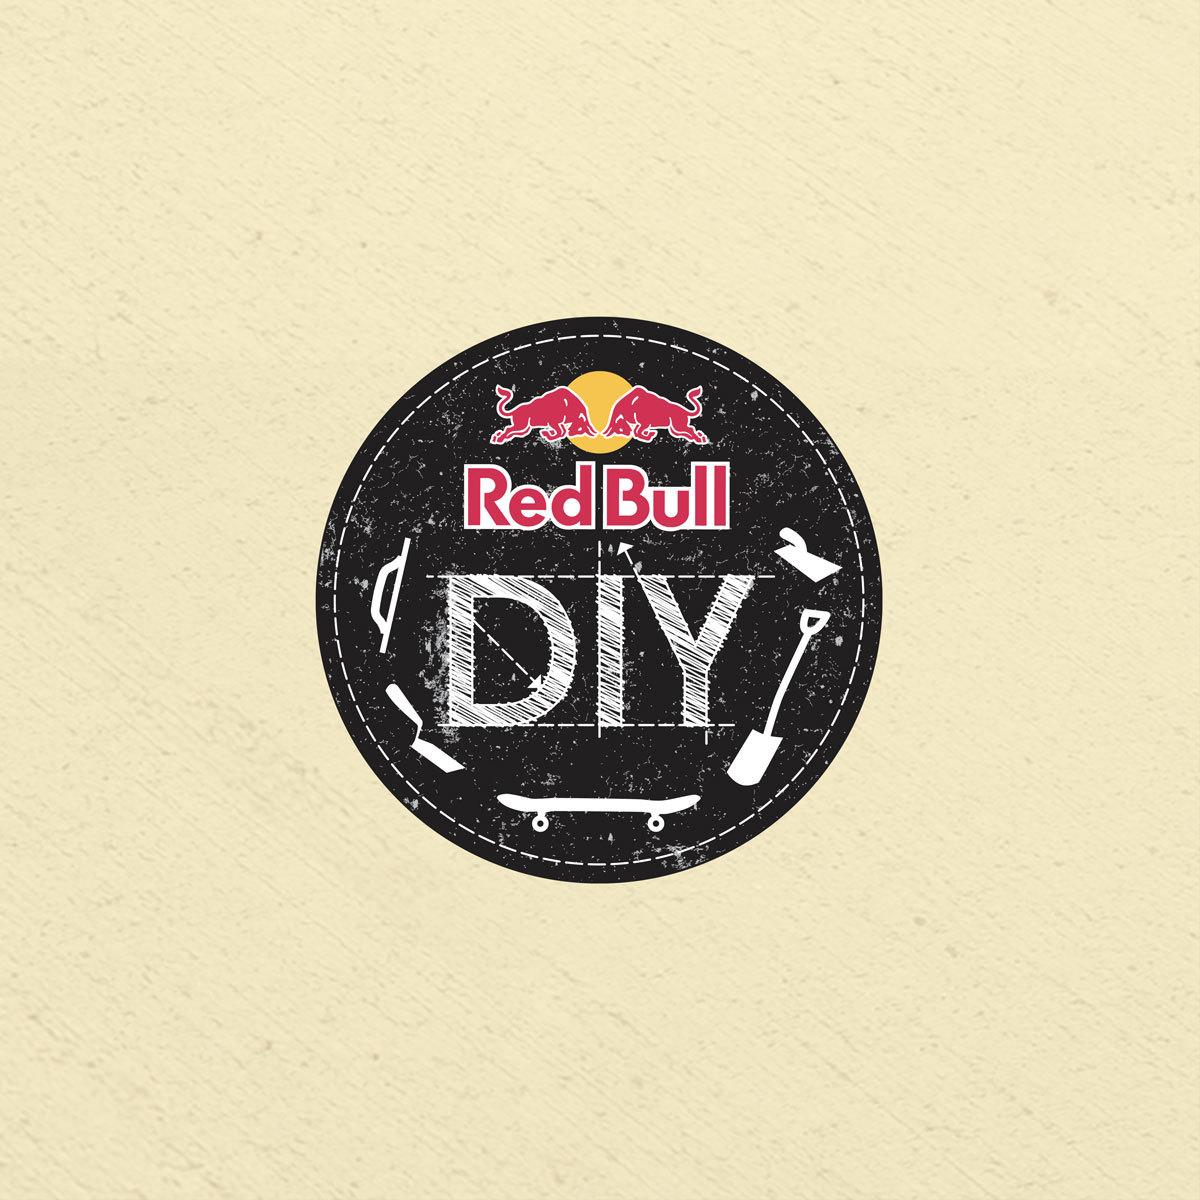 Redbull Diy 00 MHG Bern